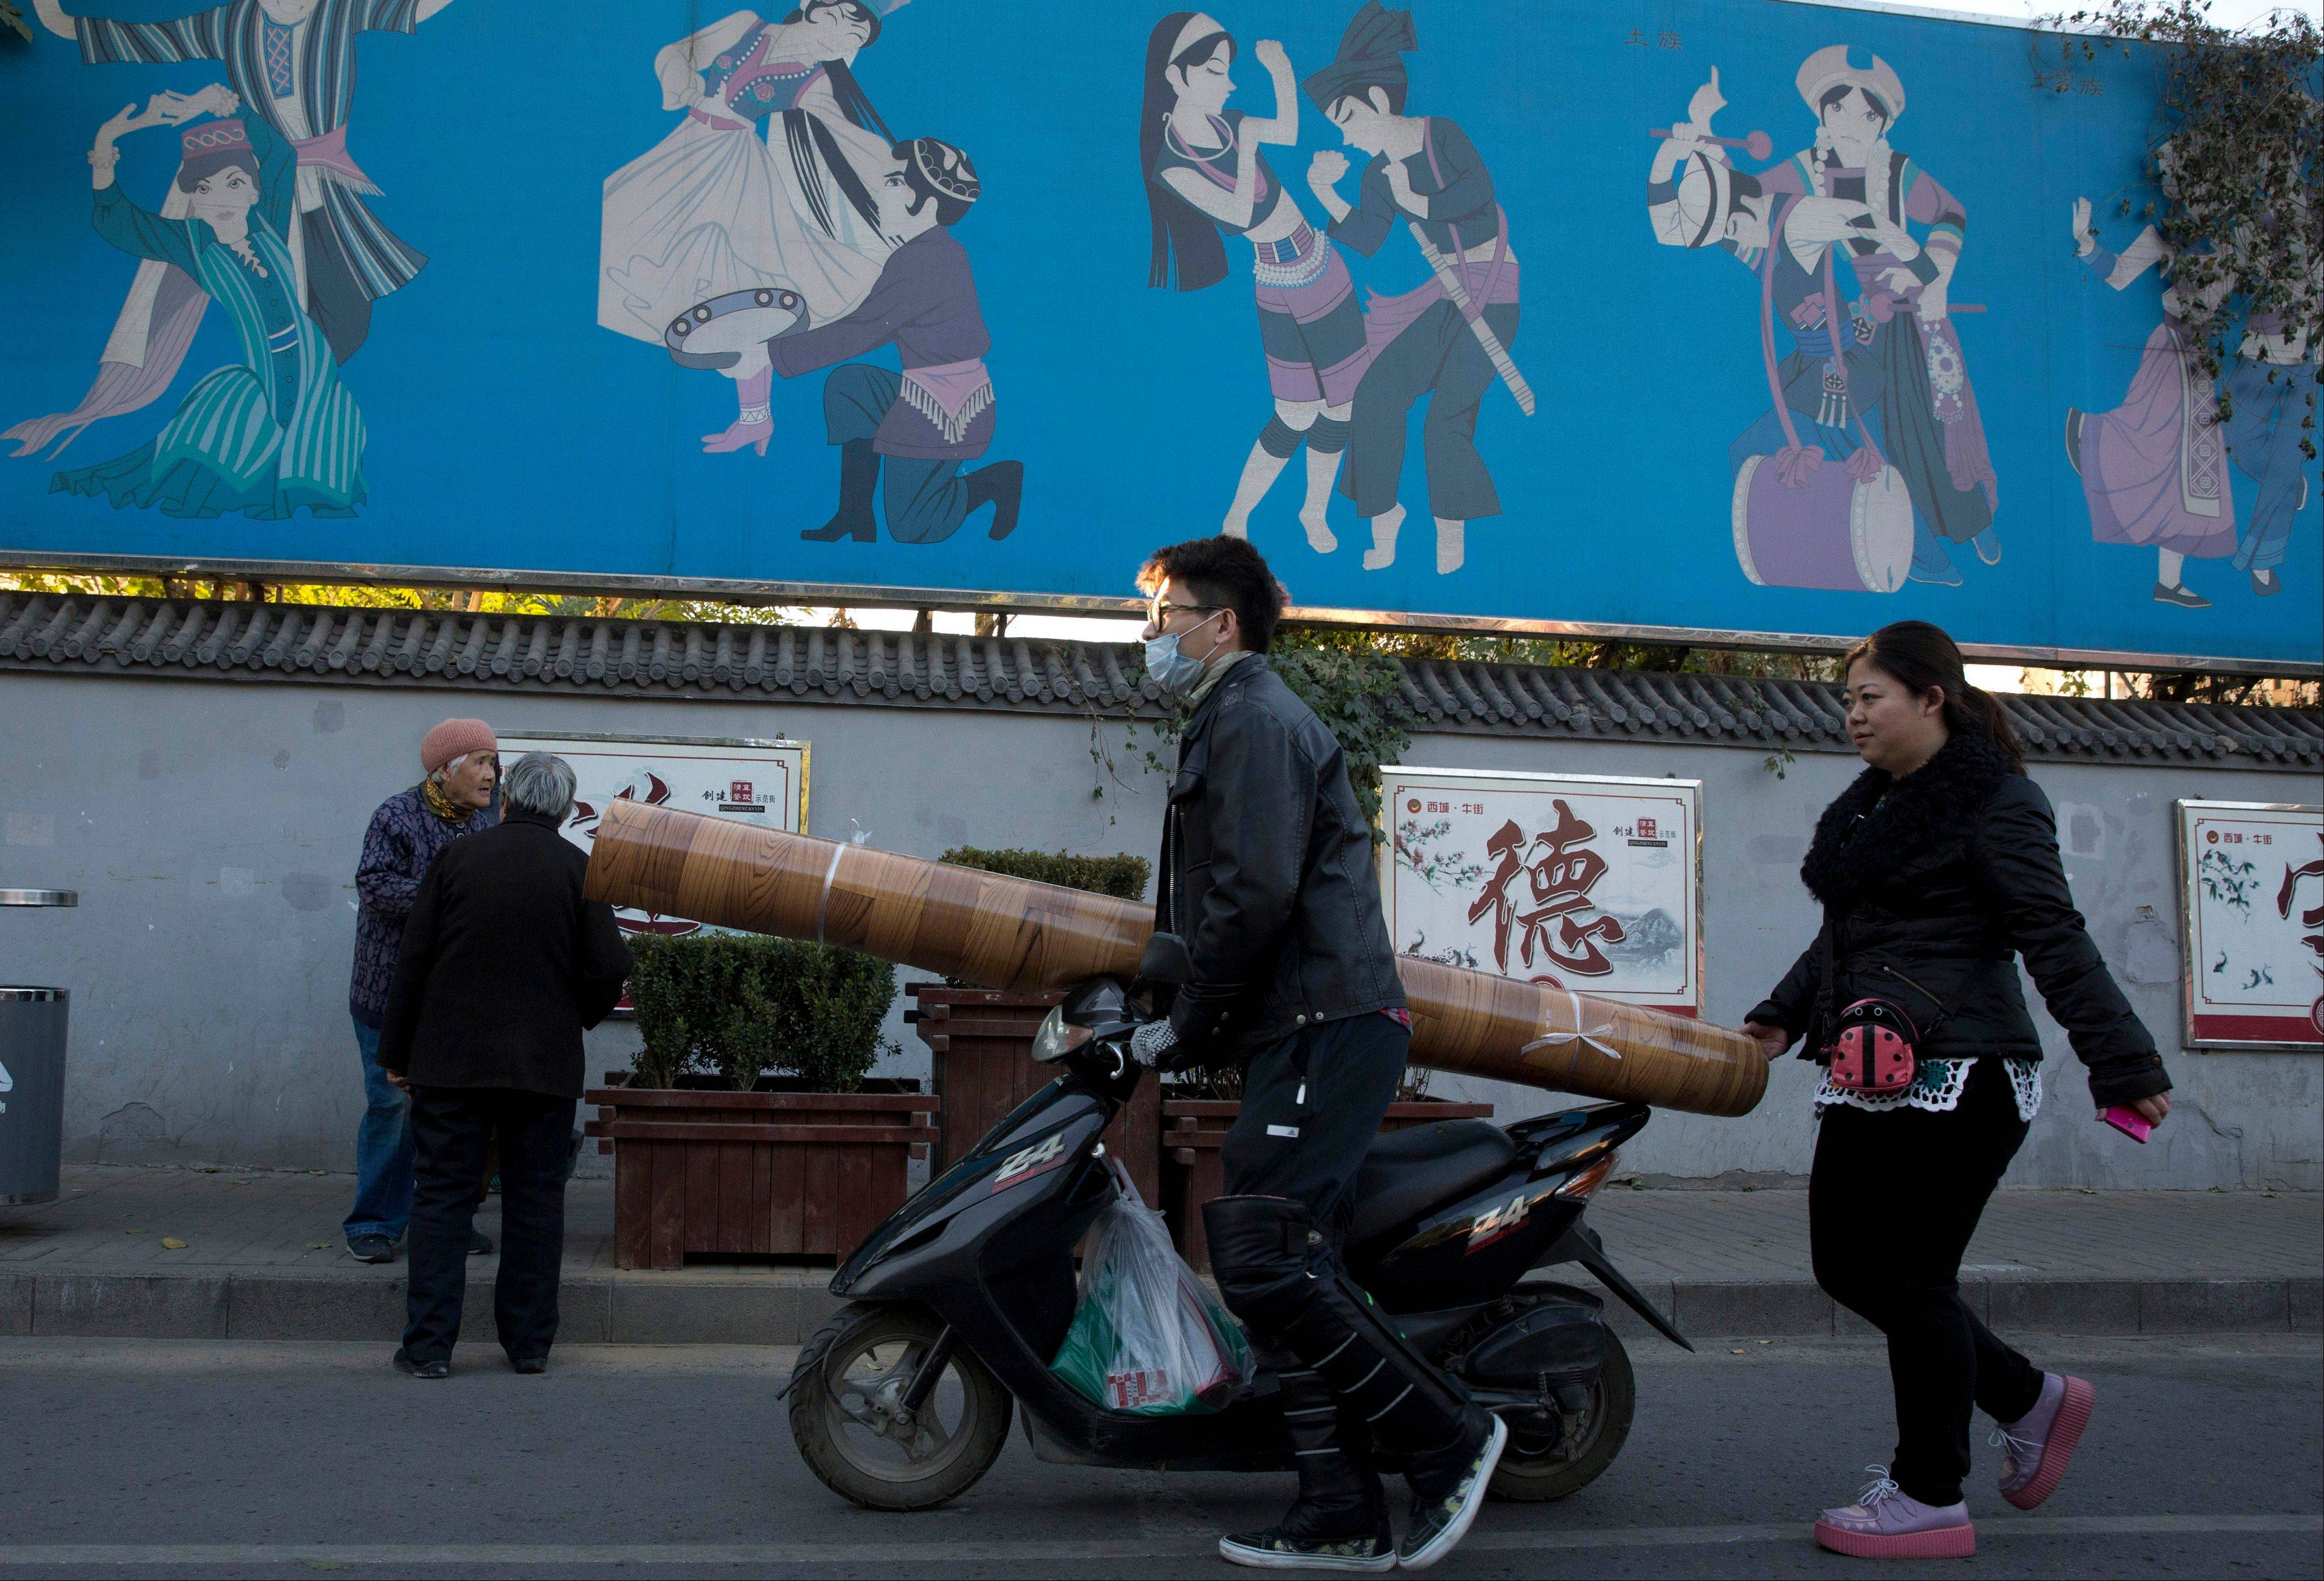 Residents walk by a mural depicting China's ethnic minorities including Uighurs in Beijing, China.